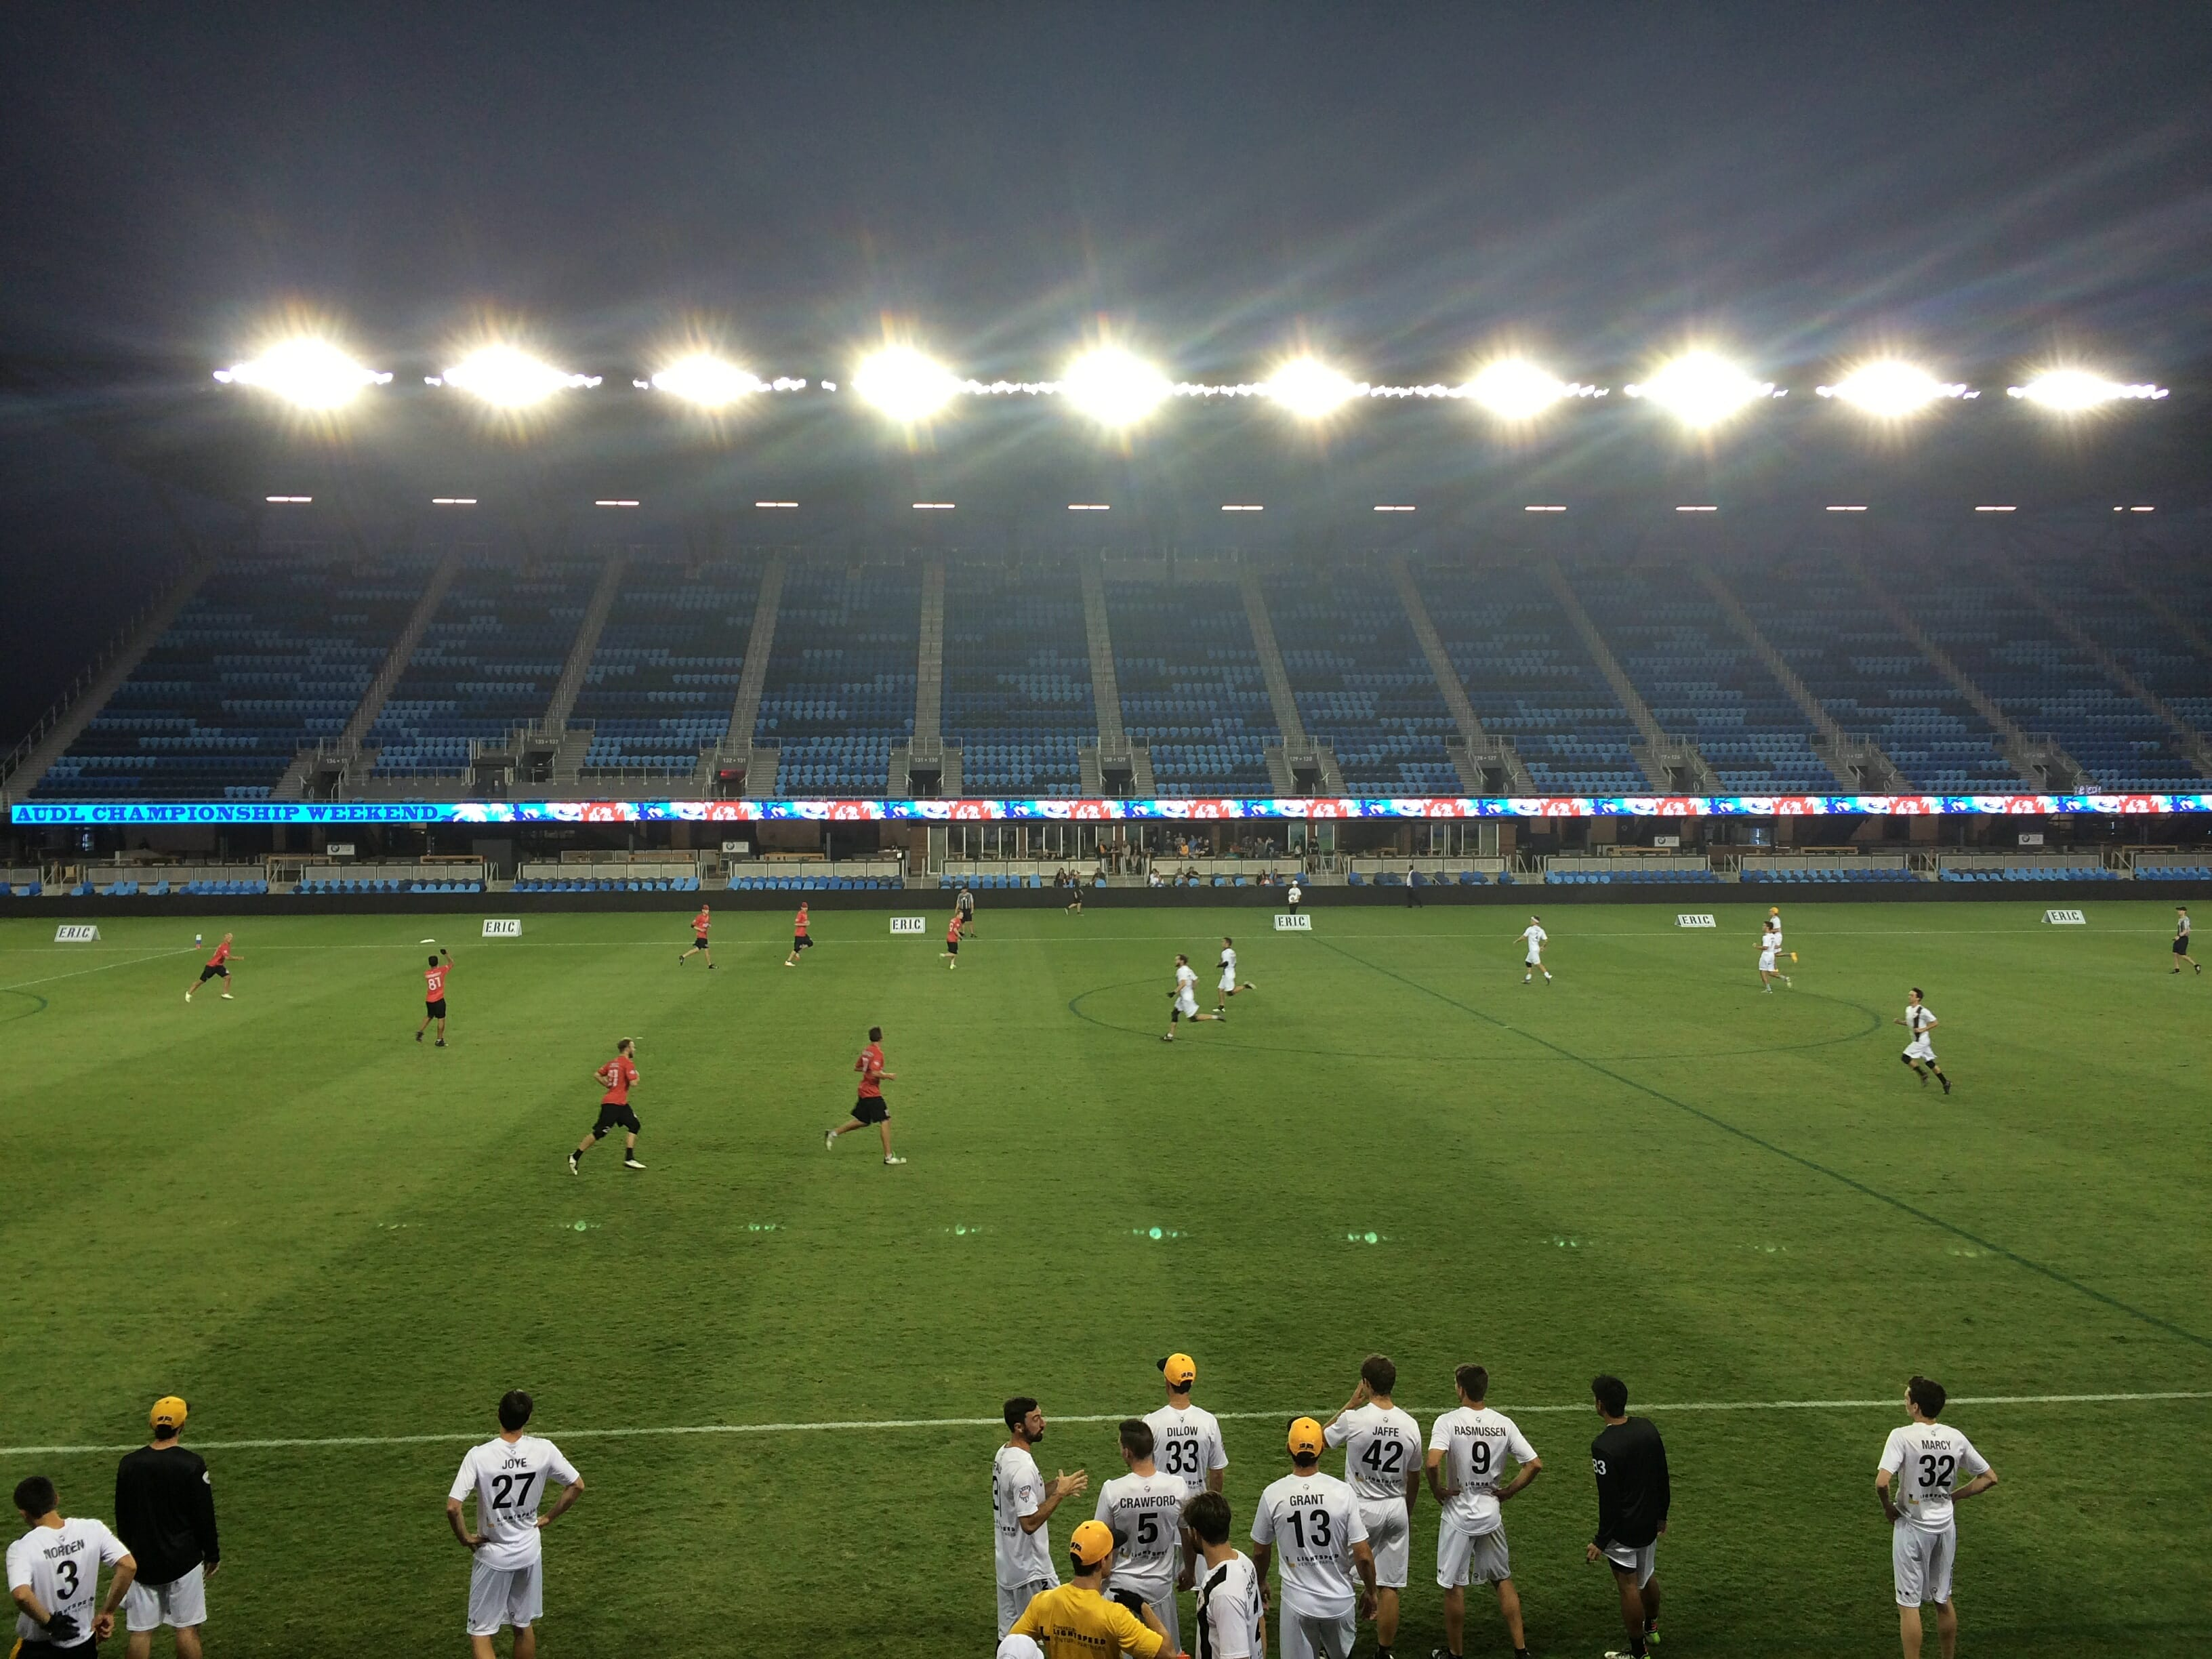 Watching the teams play under the lights in a stadium of Avaya's size was awesome.